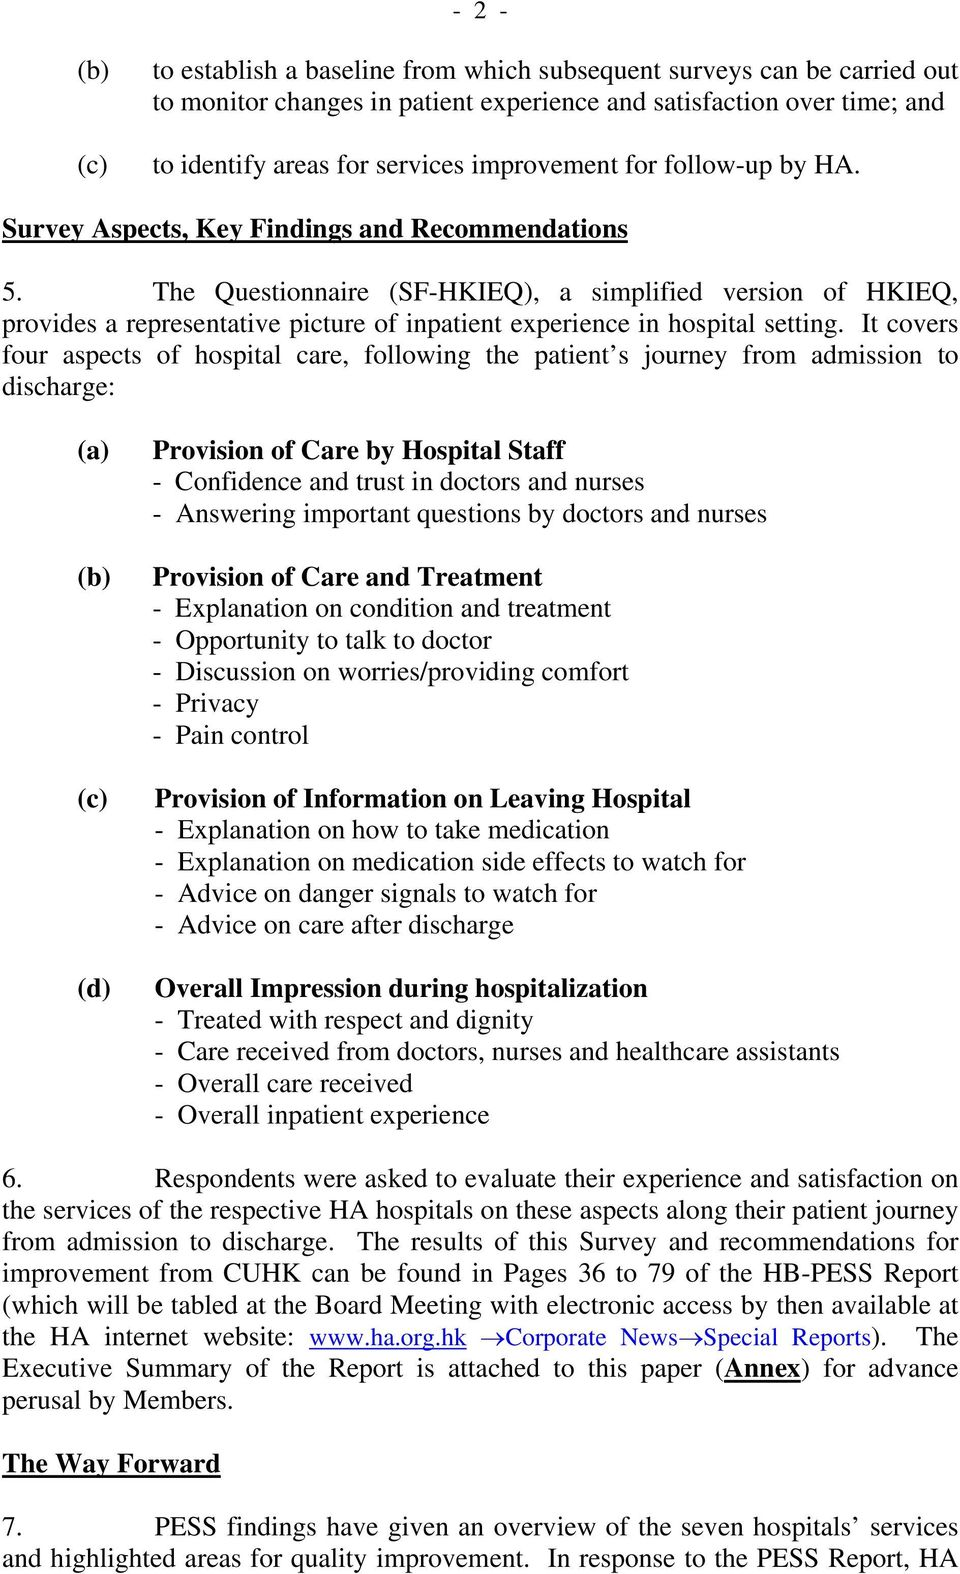 The Questionnaire (SF-HKIEQ), a simplified version of HKIEQ, provides a representative picture of inpatient experience in hospital setting.